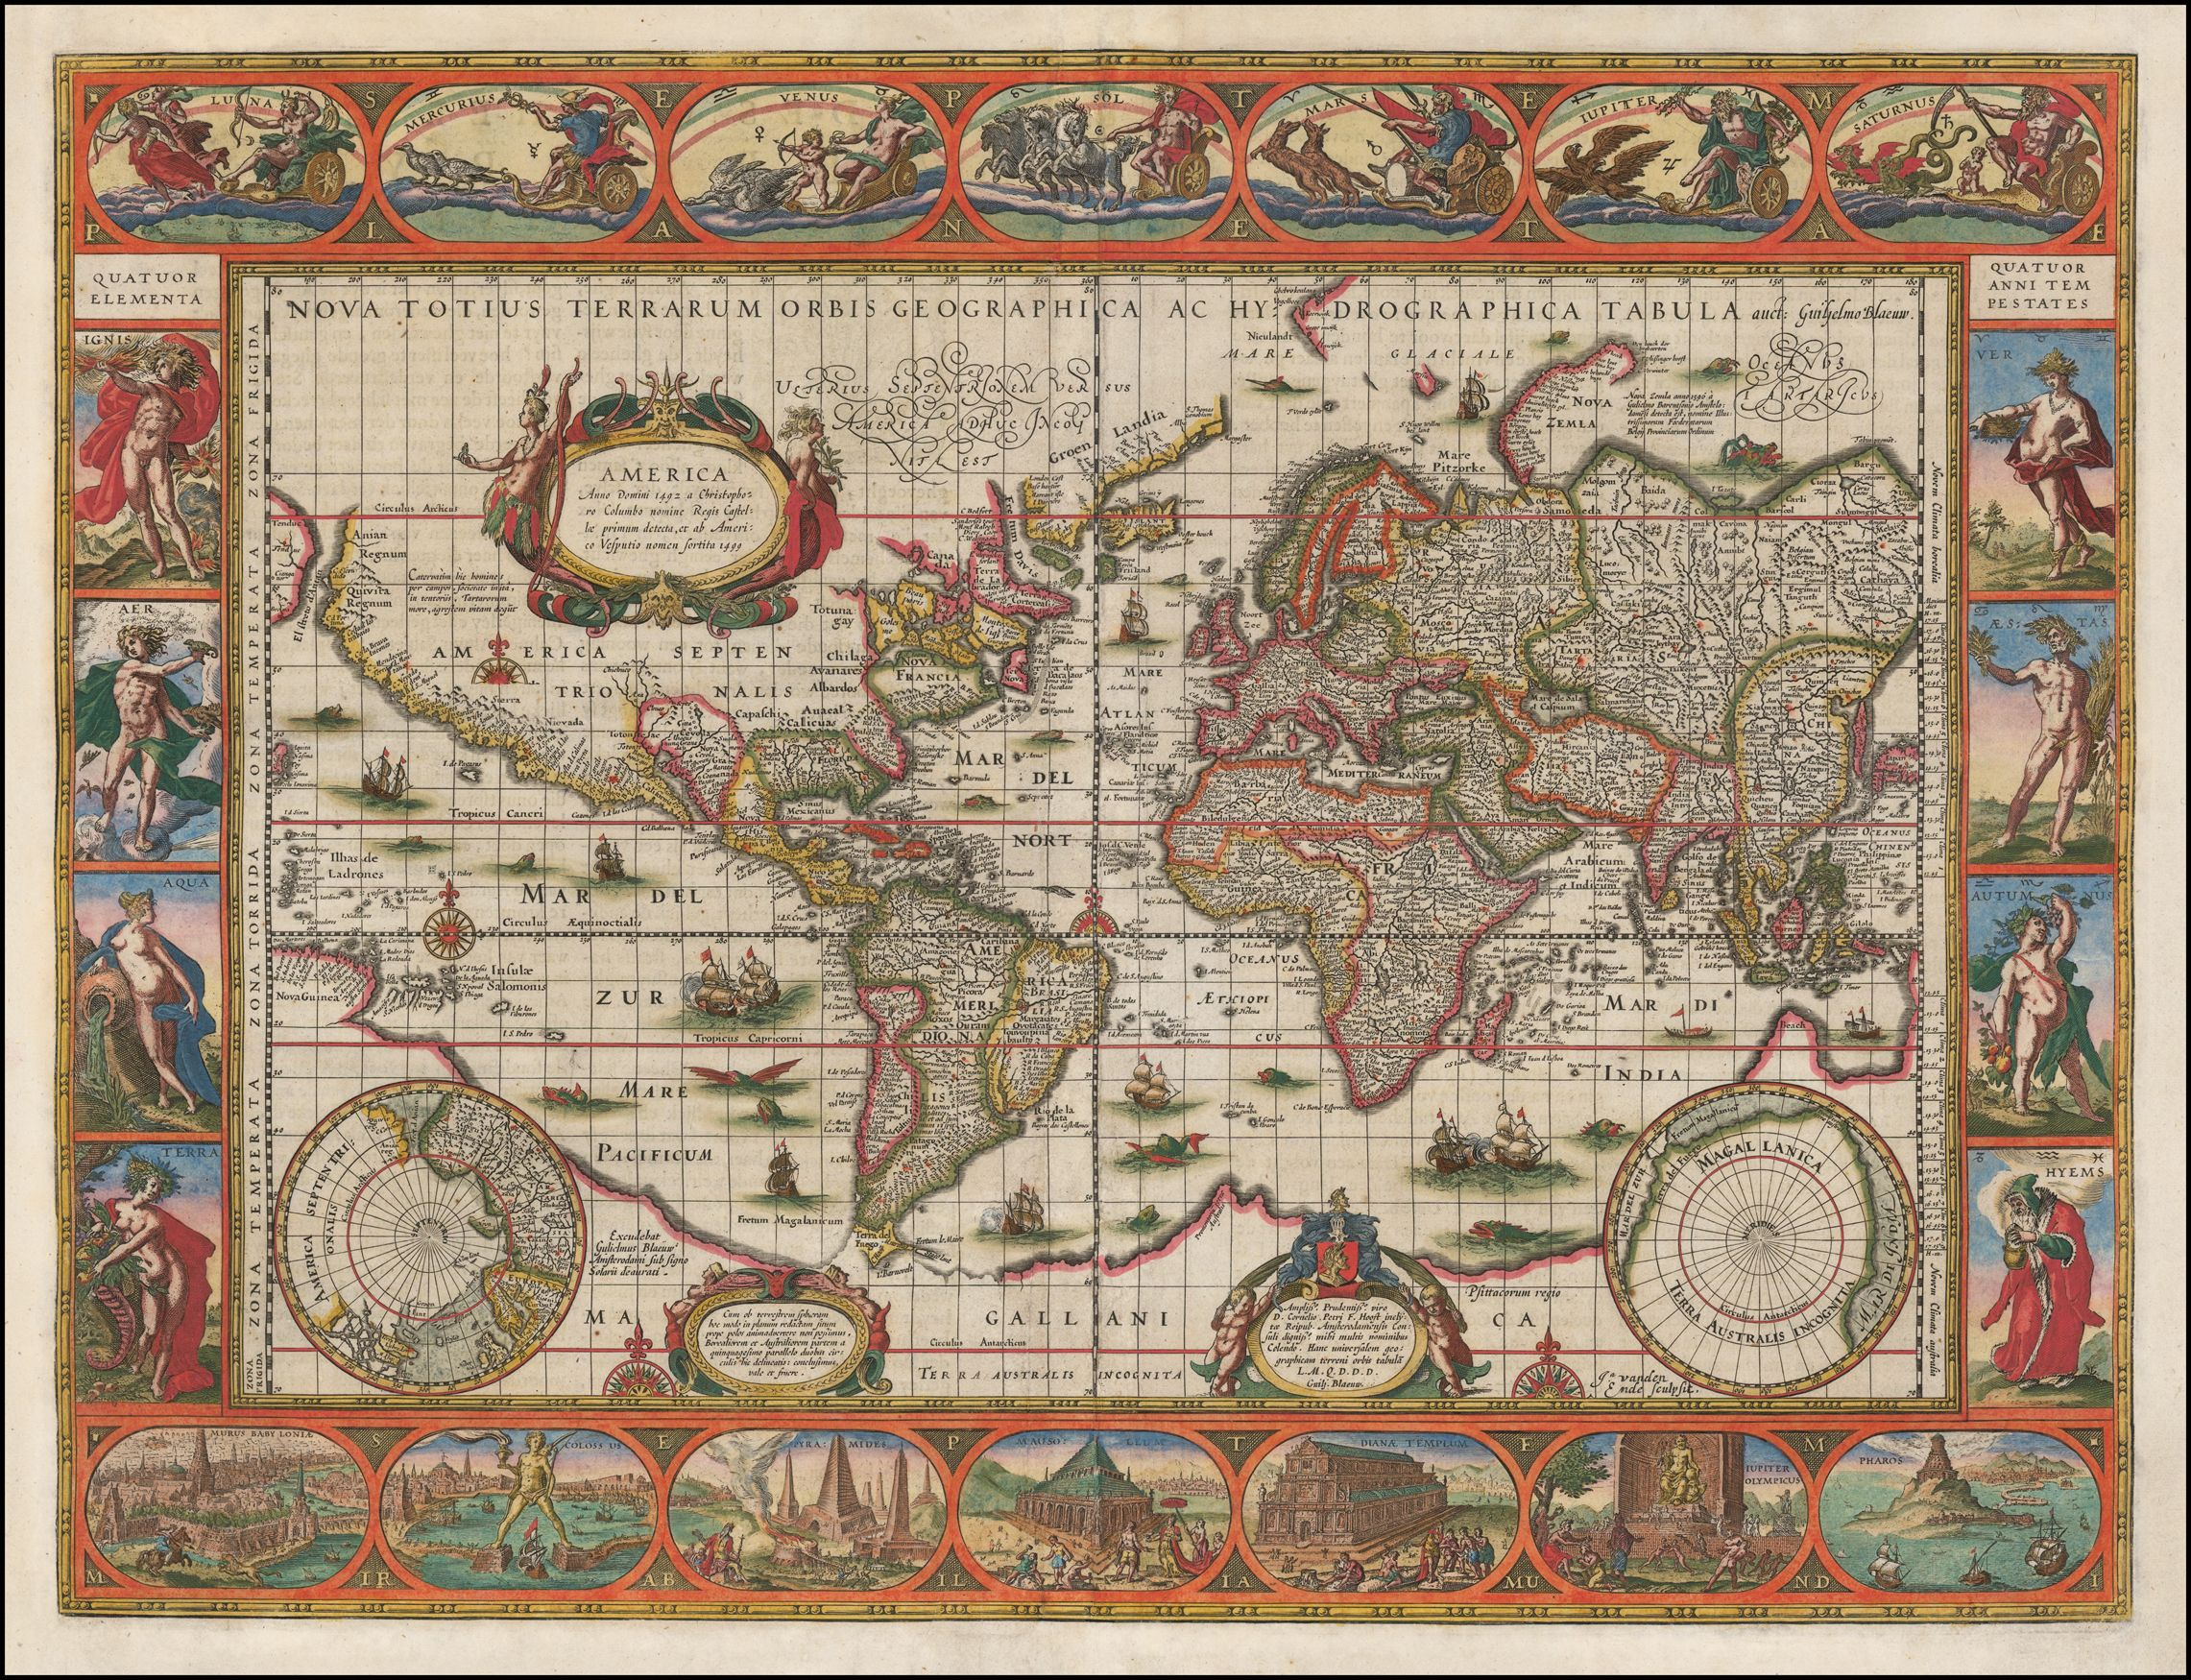 Pin by datagram one on old maps pinterest explore canvas material world maps and more gumiabroncs Images